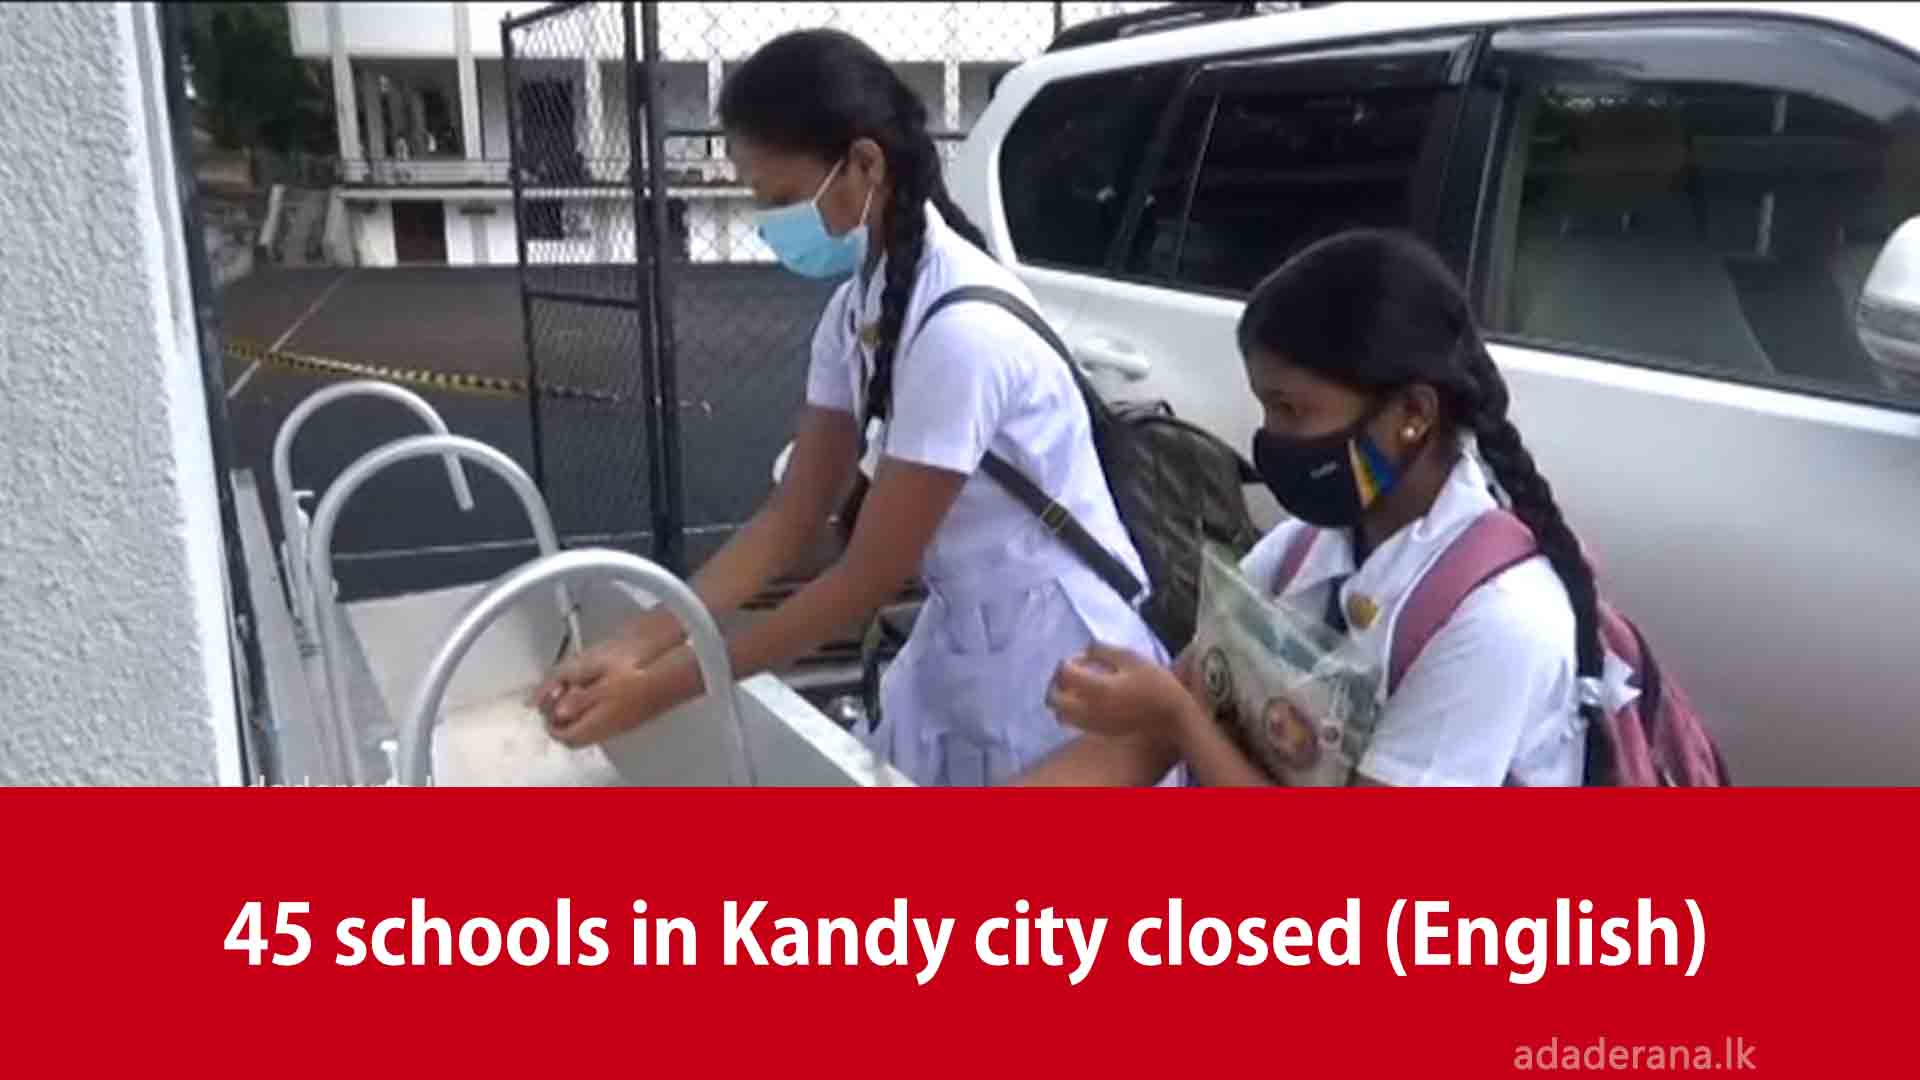 45 schools in Kandy city closed (English)